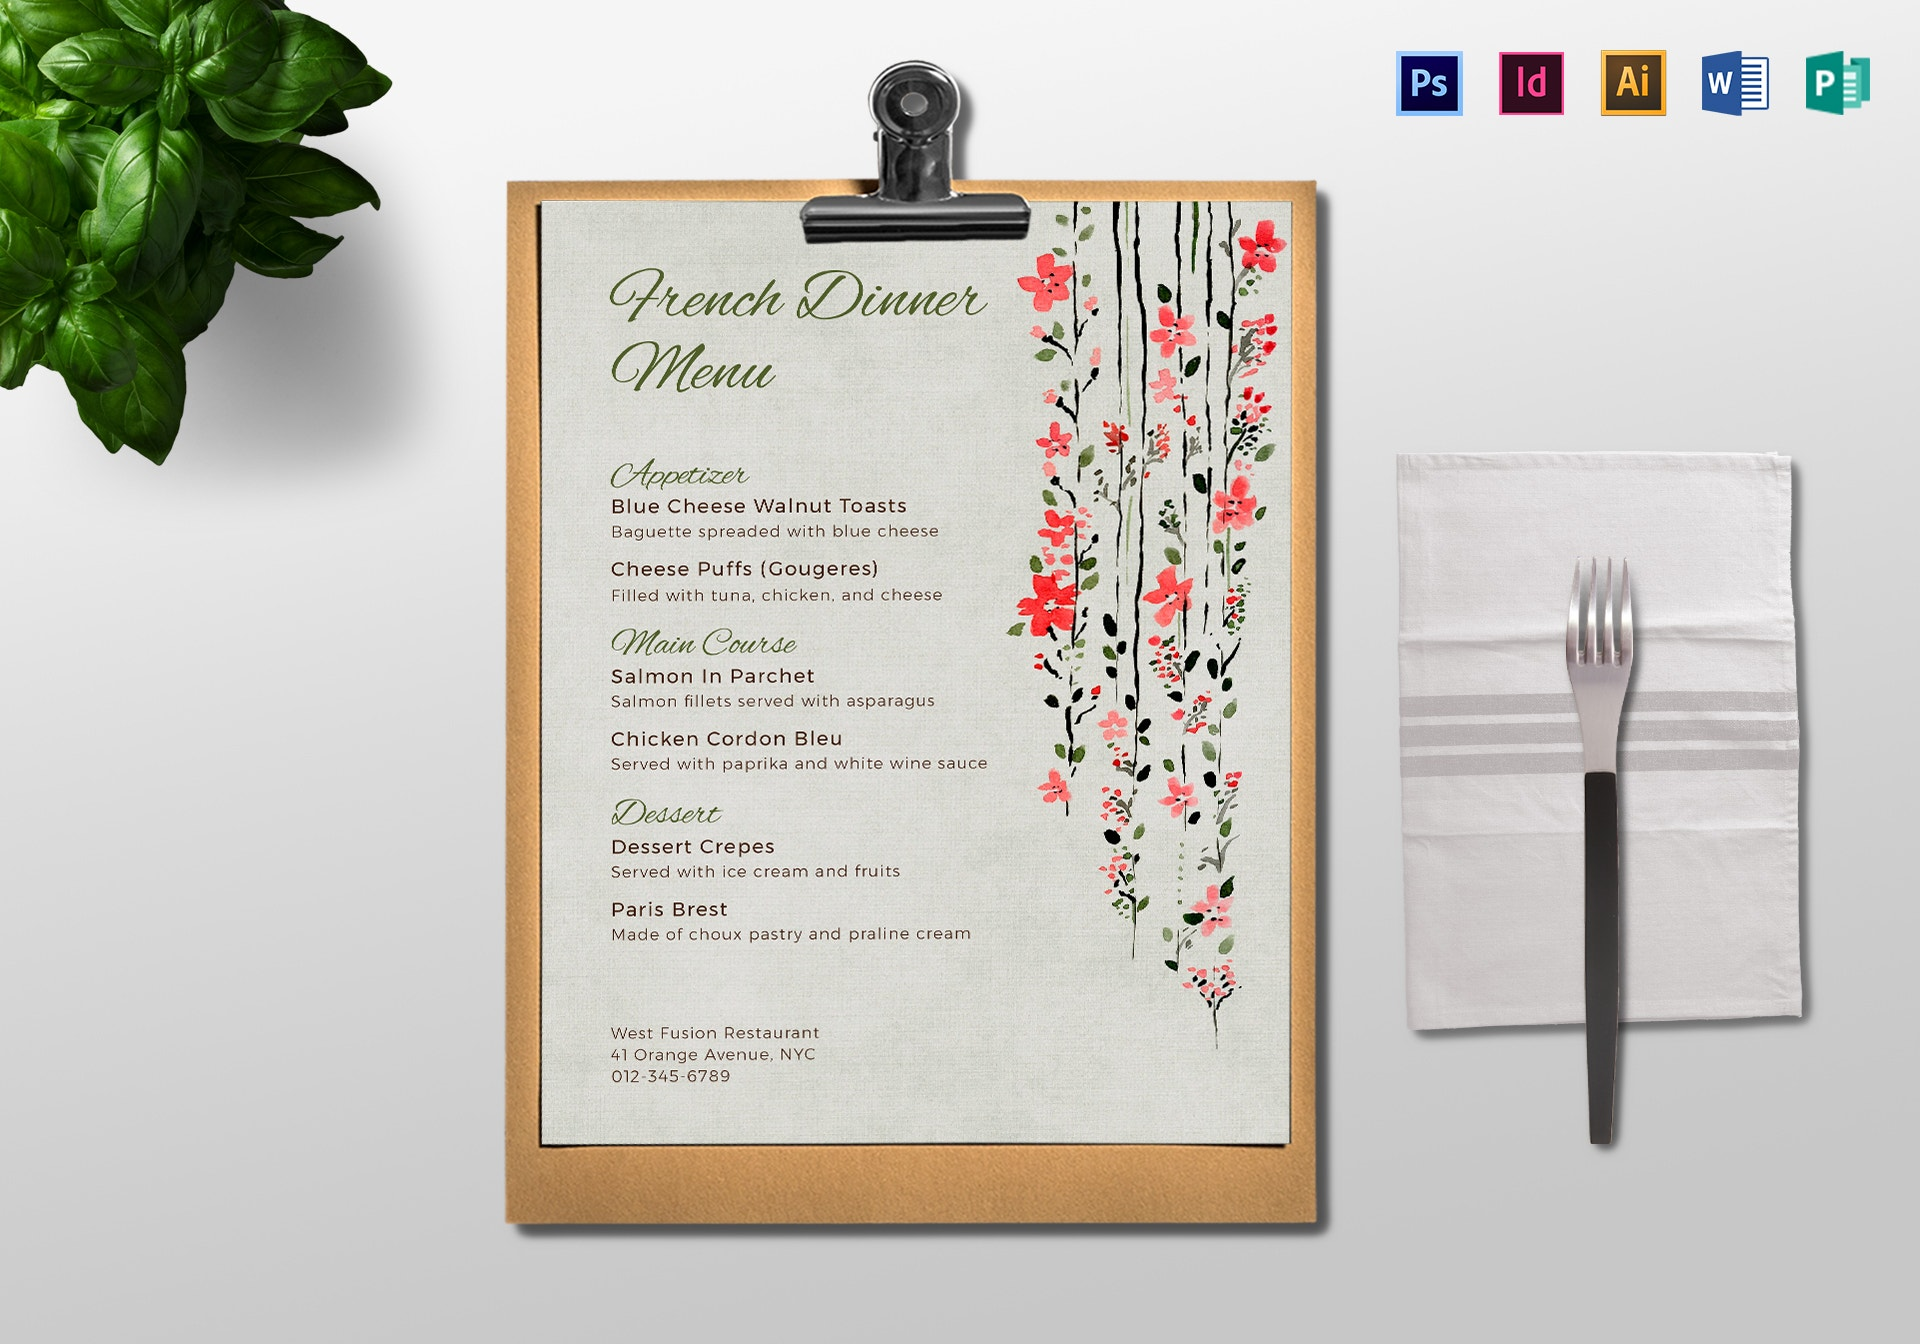 floral french dinner menu layout